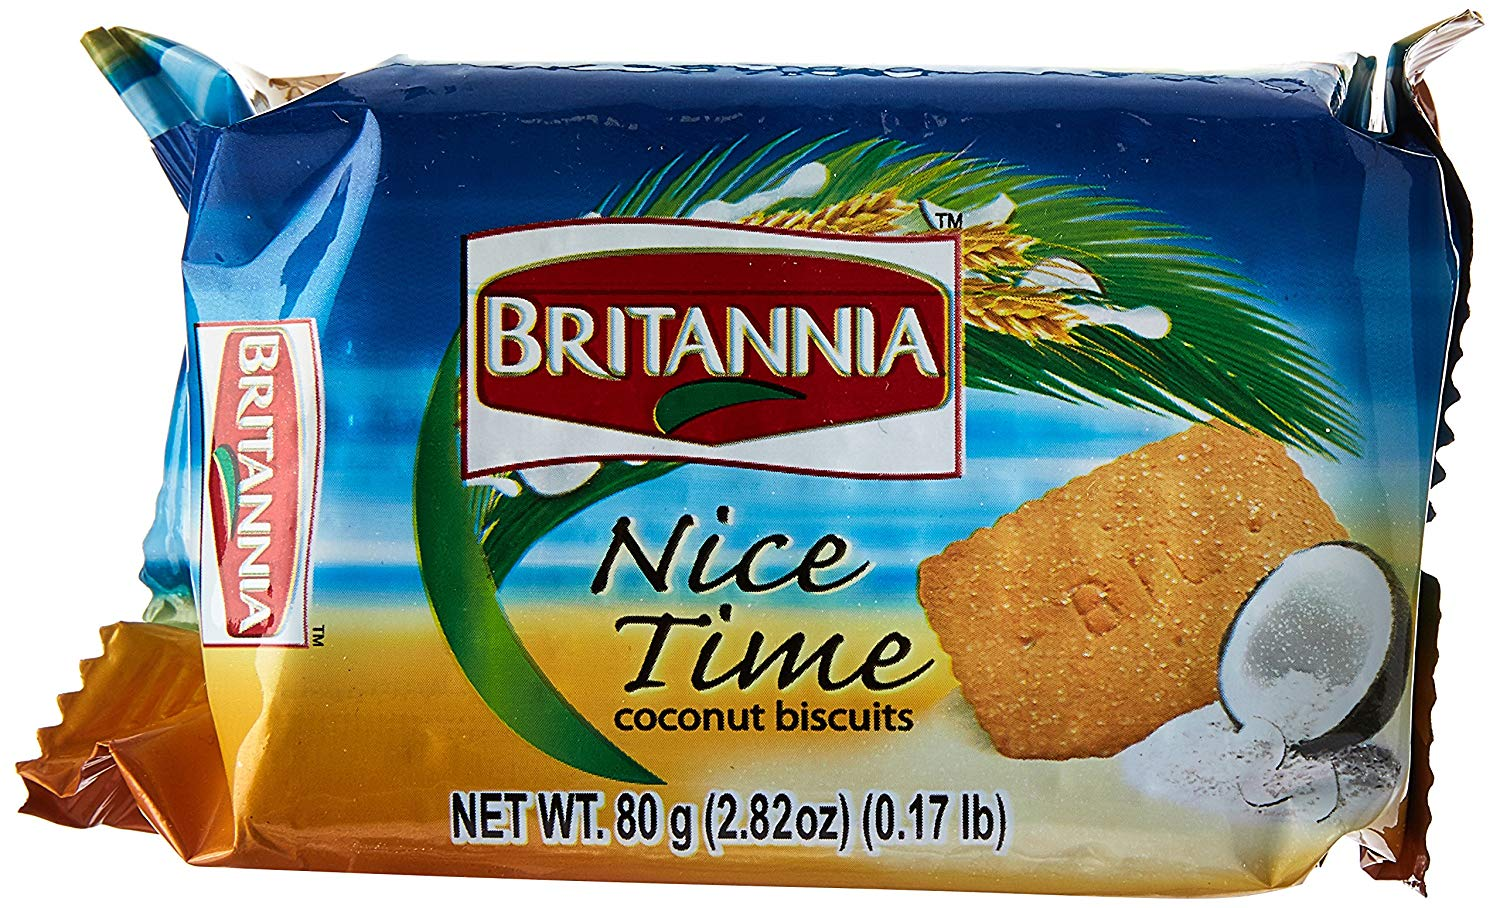 Nice Time (Coconut Biscuits)